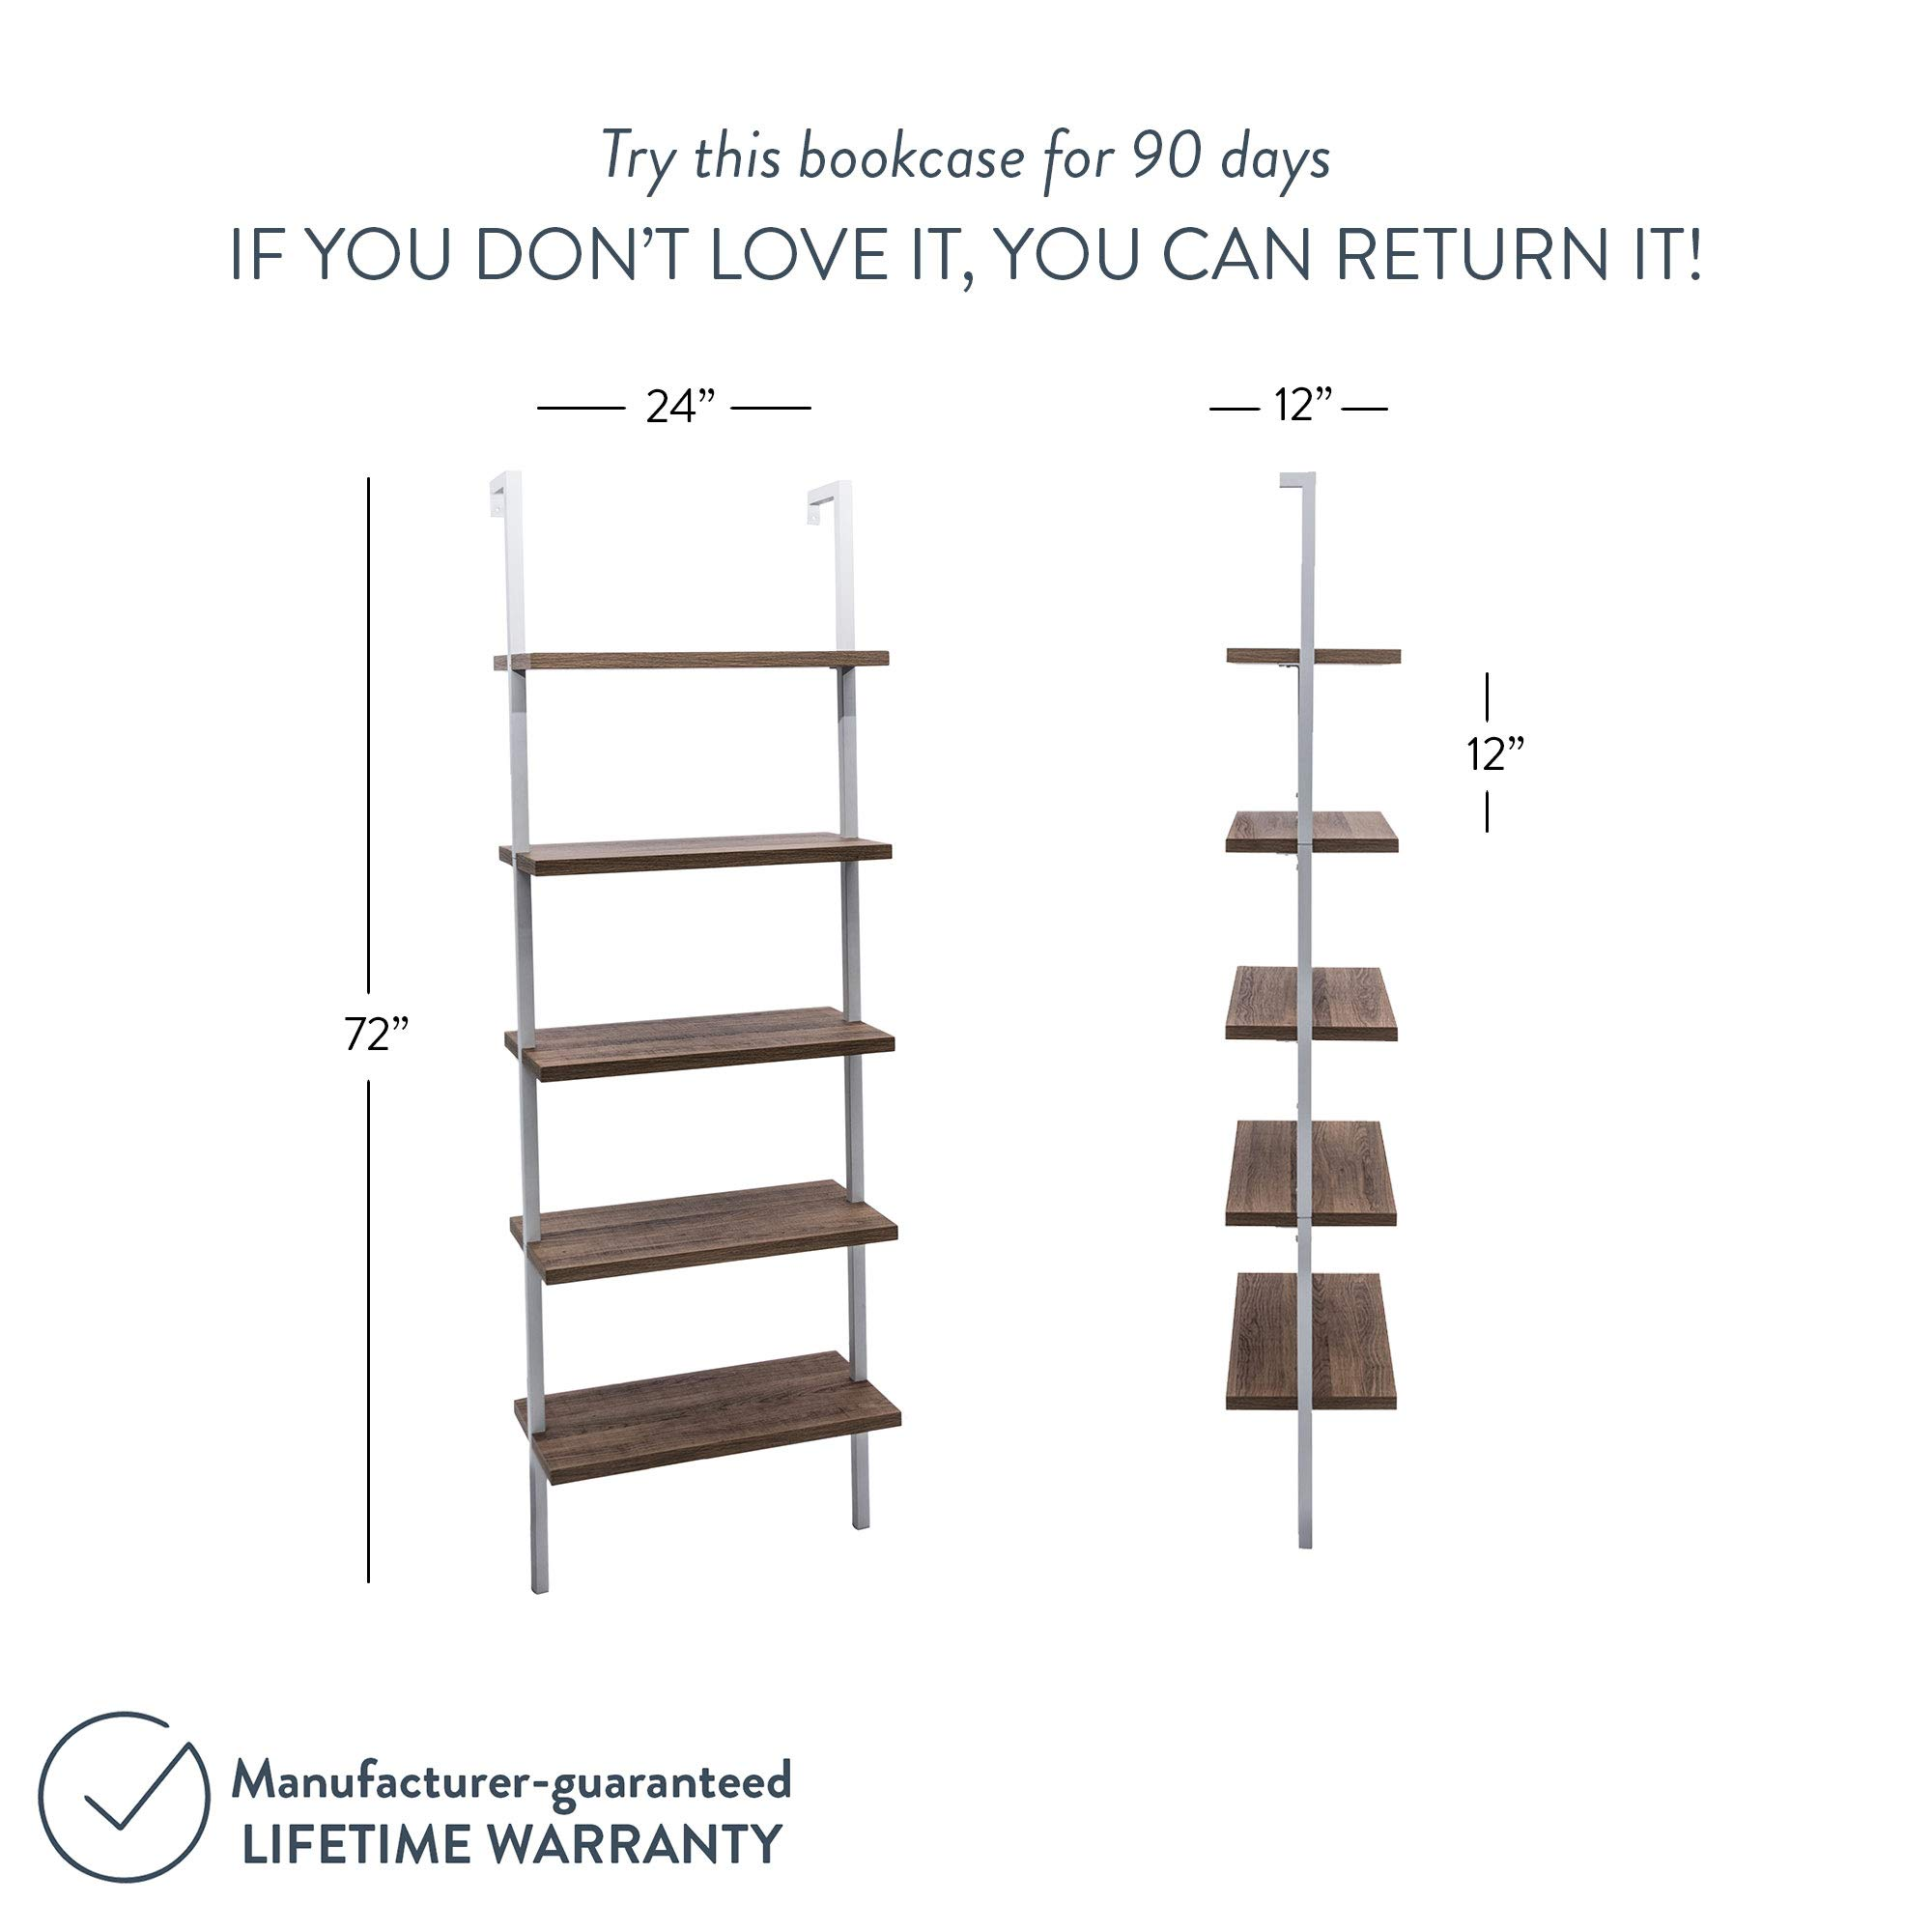 Nathan James 65502 Theo Wood Ladder Bookshelf, Bookcase, Natural Brown/White by Nathan James (Image #8)